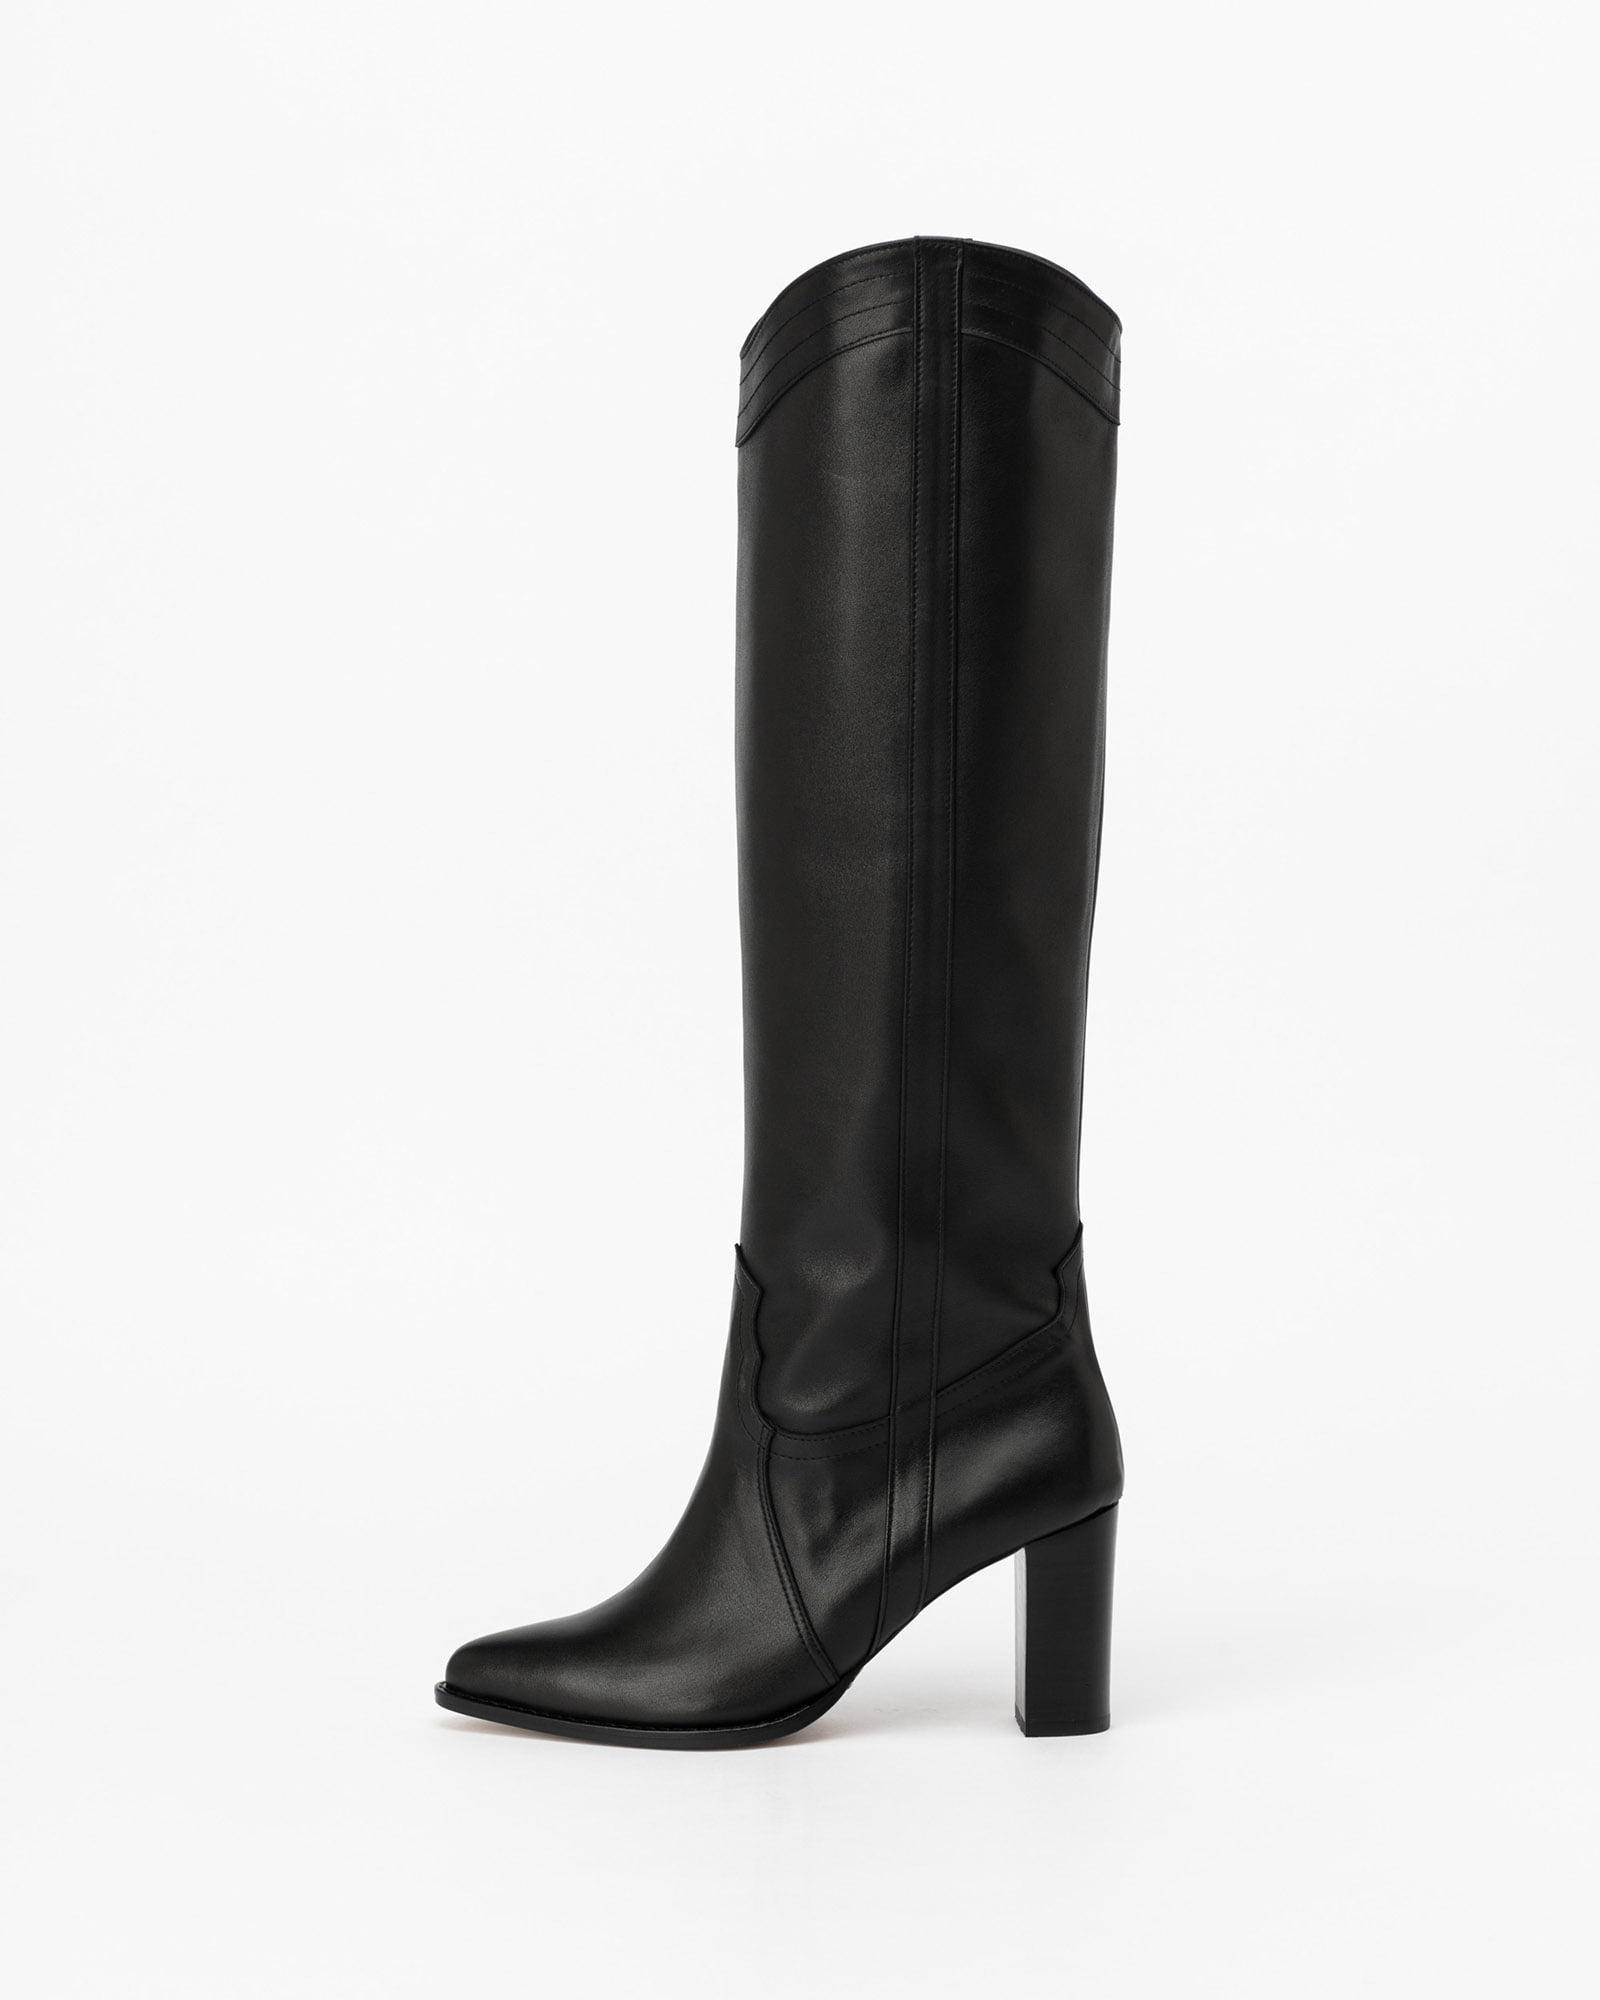 Tanae Cowboy Boots in Black